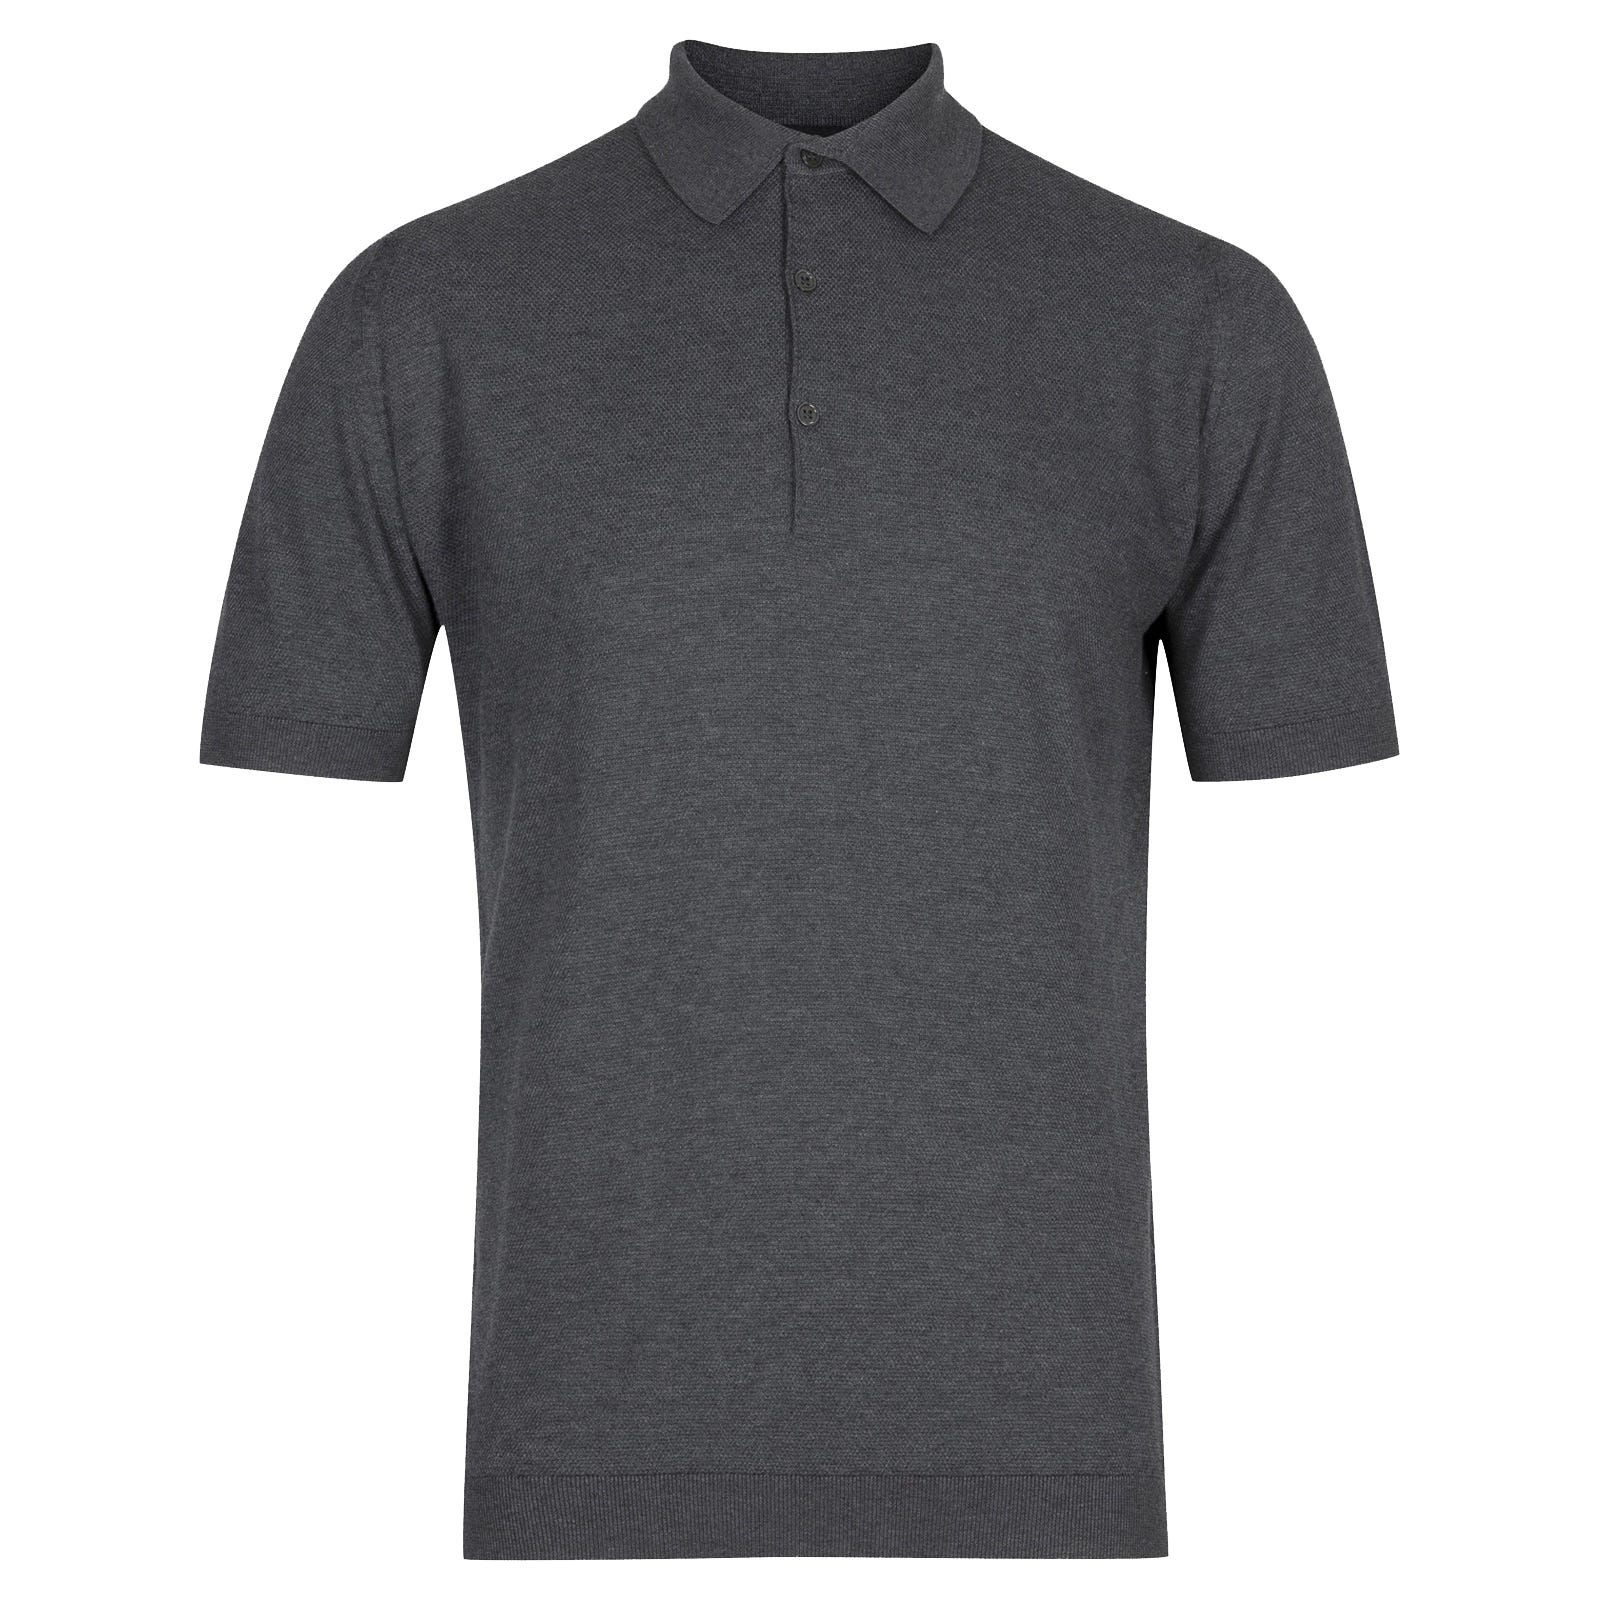 John Smedley roth Sea Island Cotton Shirt in Charcoal-XL